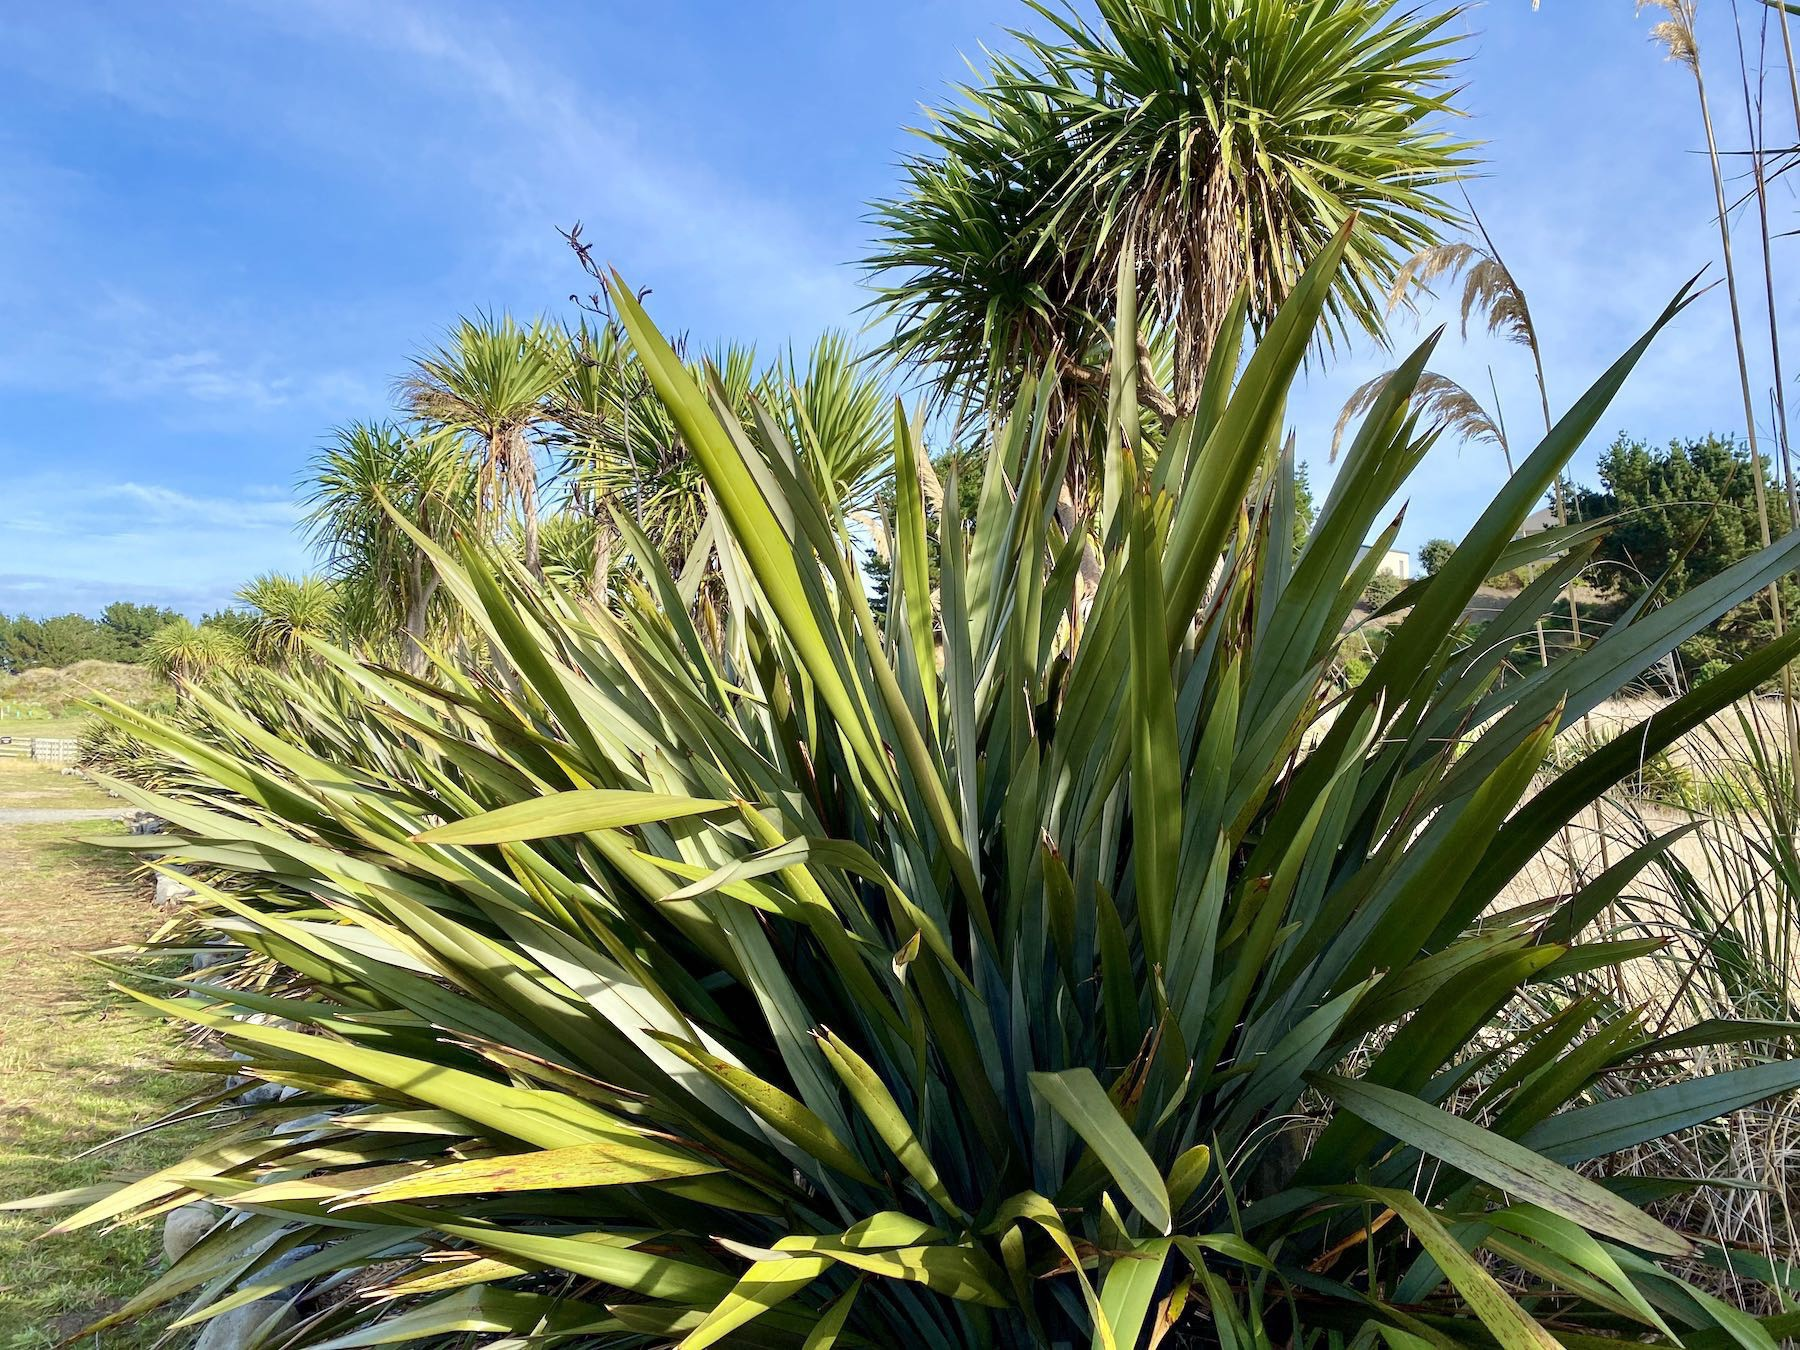 Flax plant with cabbage tree behind.